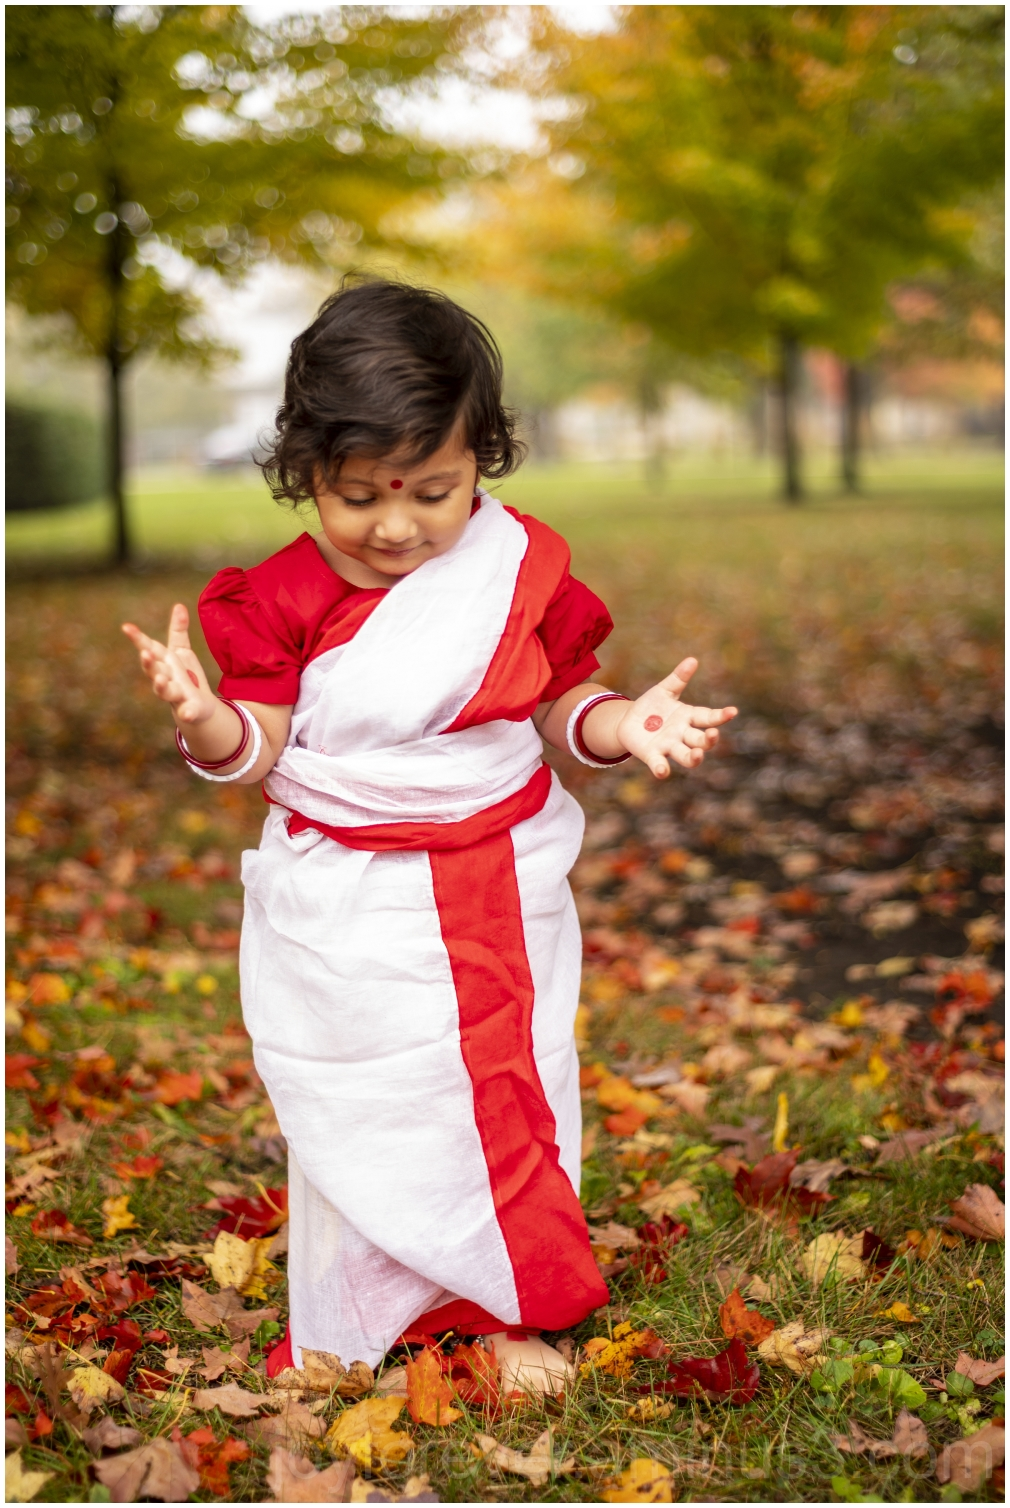 Fall autumn durgapuja saree toddler Hindu Indian